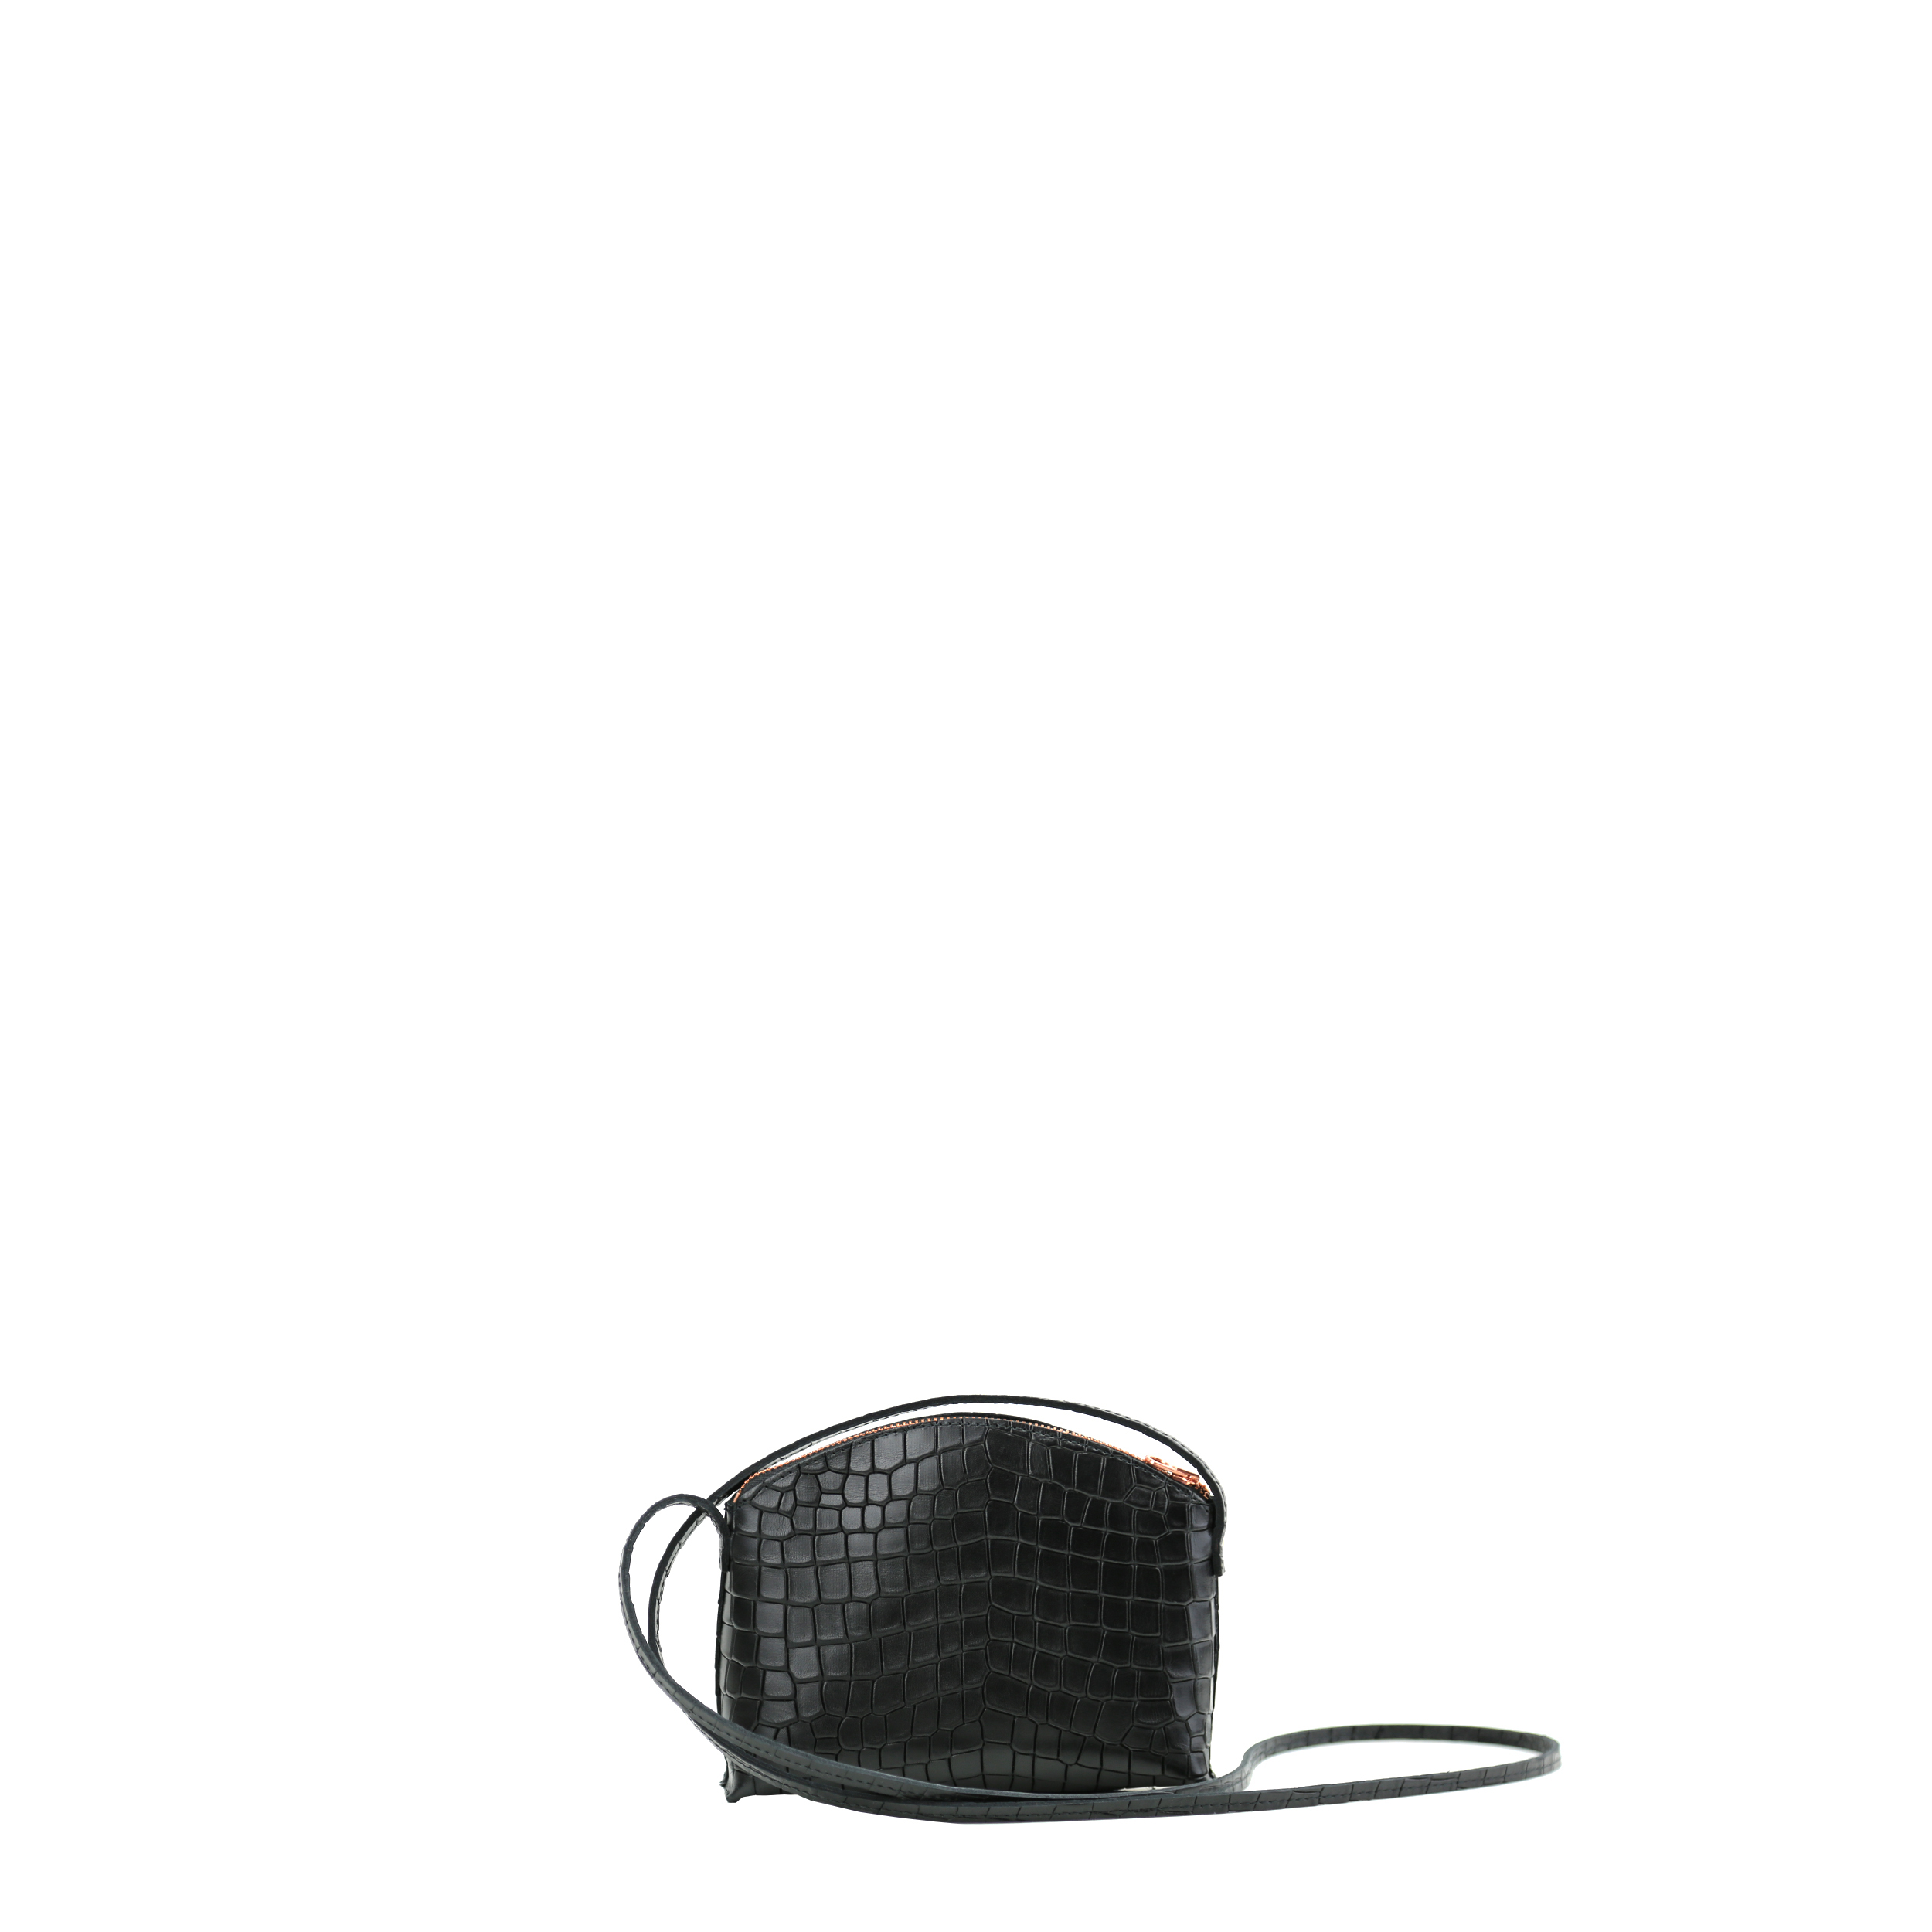 TIMI Mini Crossbody Bag Croco Black_3